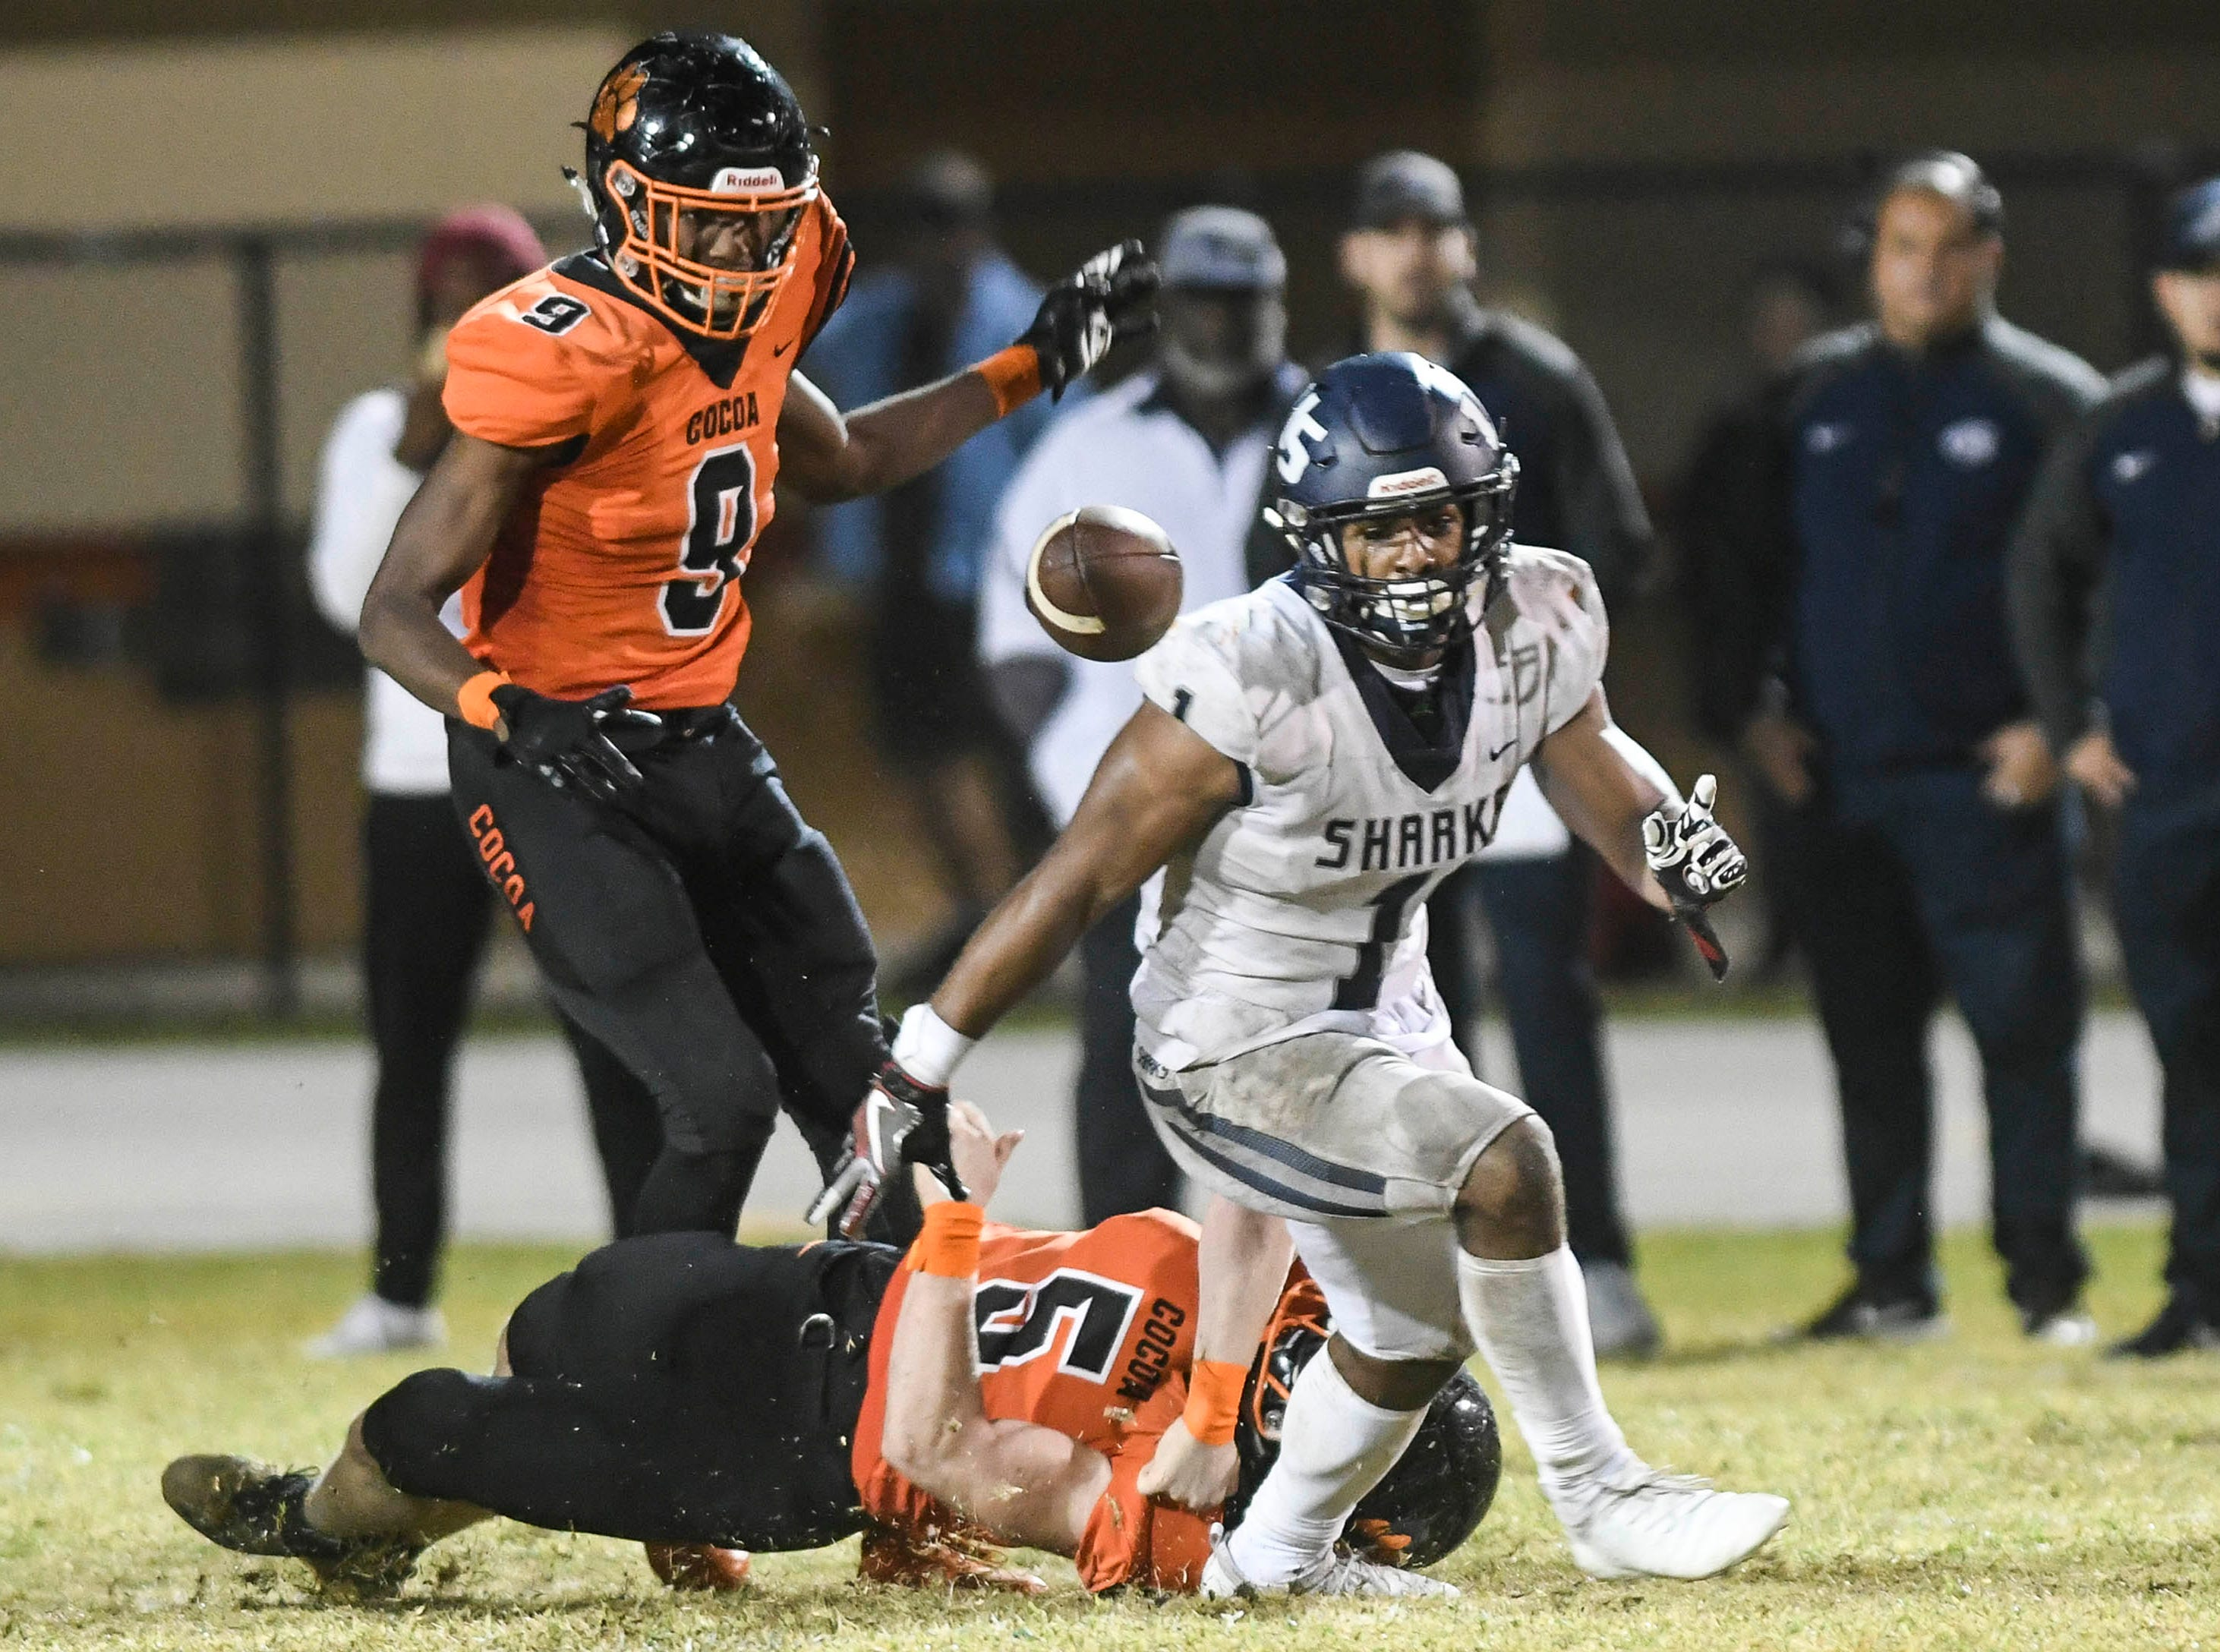 Cocoa's Brock Holland forces Kenny Mcintosh of University to fumble during Friday's Class 4A state semifinal. Willie Gaines would recover the ball for the Tigers preserving their 32-31 victory.